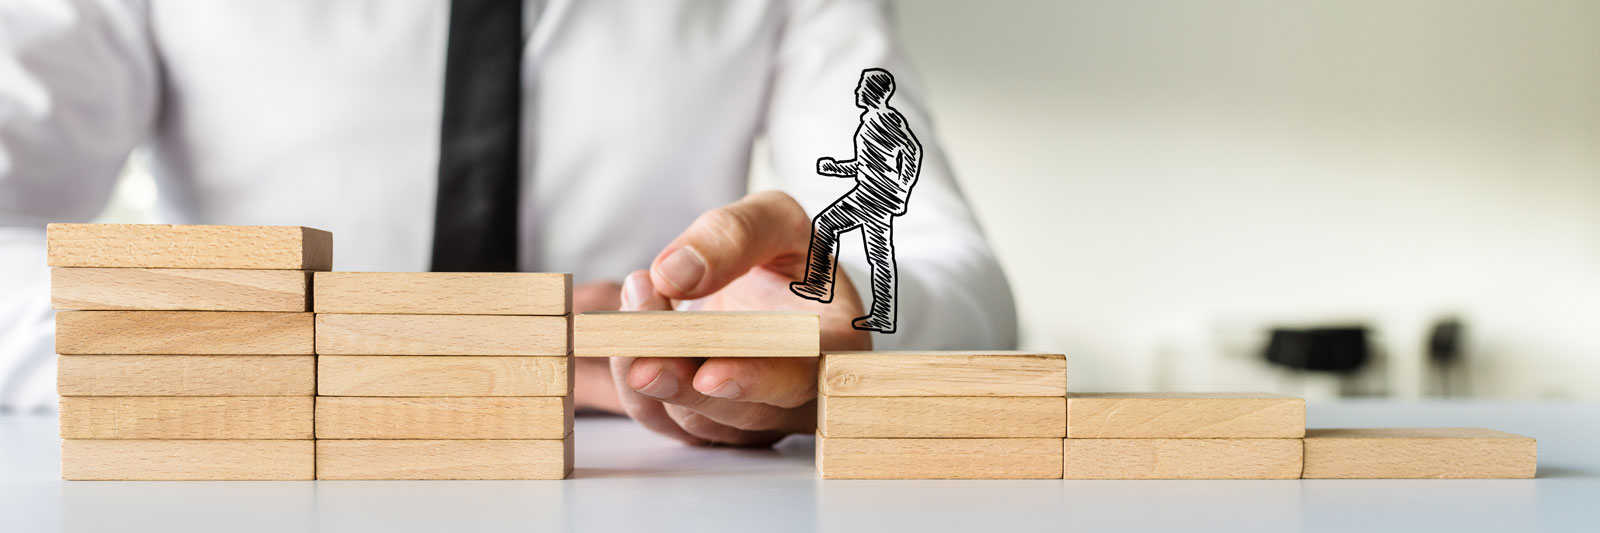 INSTILL A CULTURE OF MENTORING FOR SOLID GROWTH